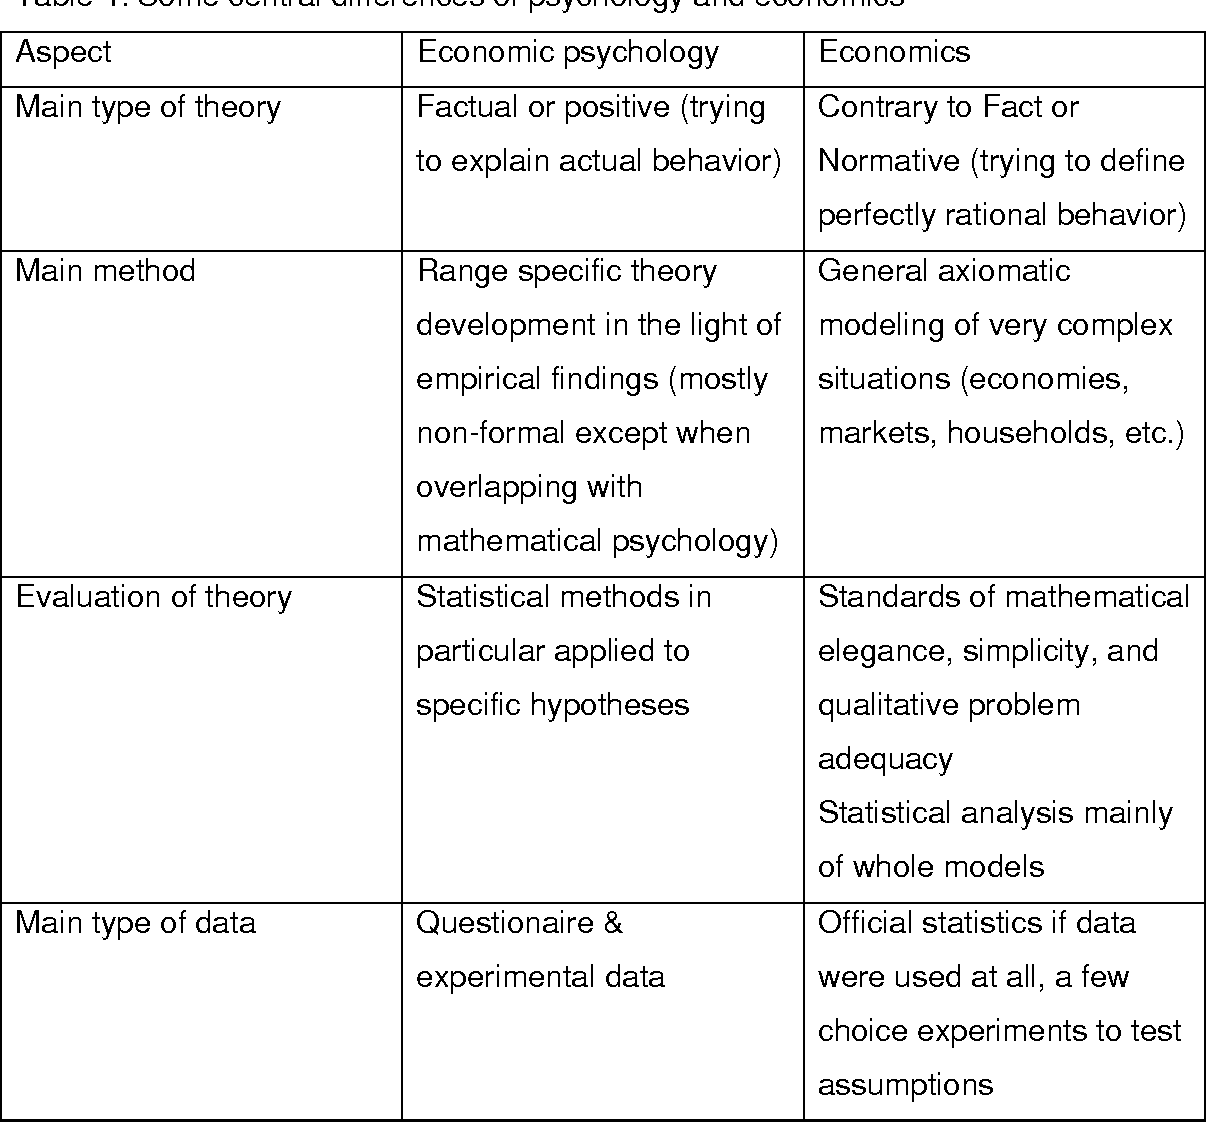 008 Research Paper Table4 Psychology Surprising Papers For Topic Examples Online Full